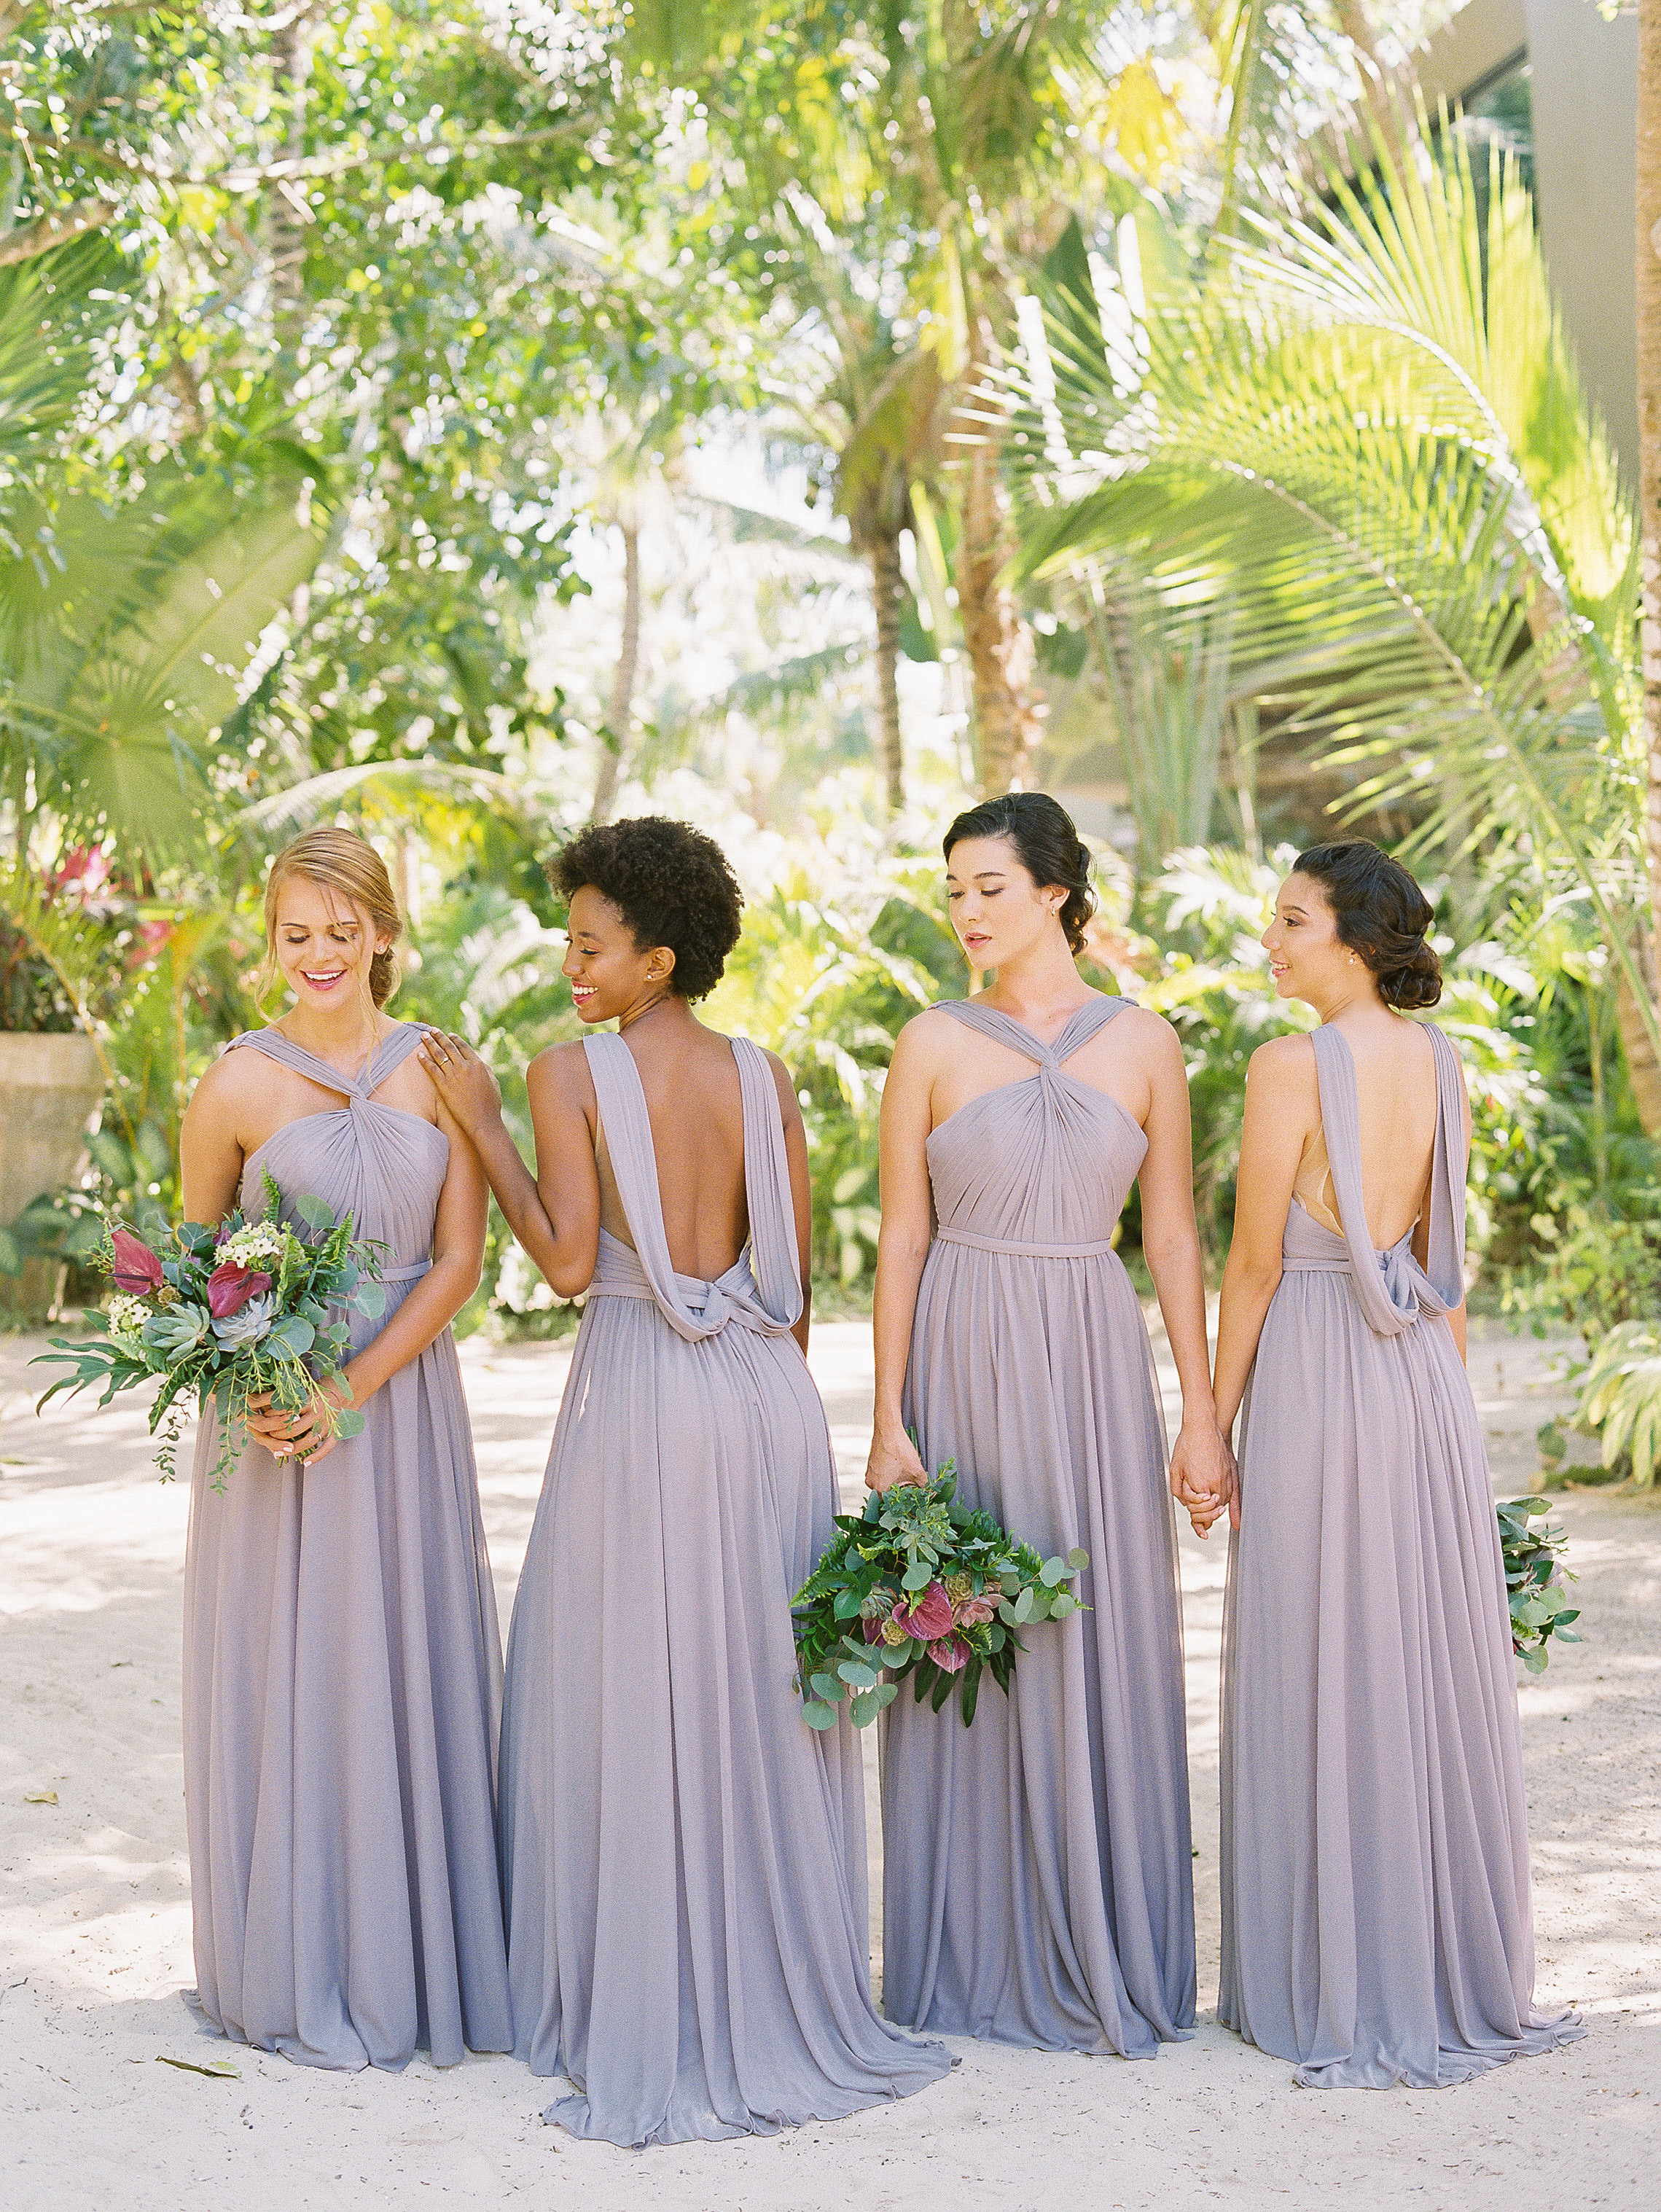 Affordable bridesmaids dresses perfect for destination weddings—We took Kleinfeld Bridal wedding dresses and Kleinfeld Bridal Party bridesmaids dresses to Tulum, Mexico for a fun photoshoot on the beach full of flowers, sun, sand and fun!